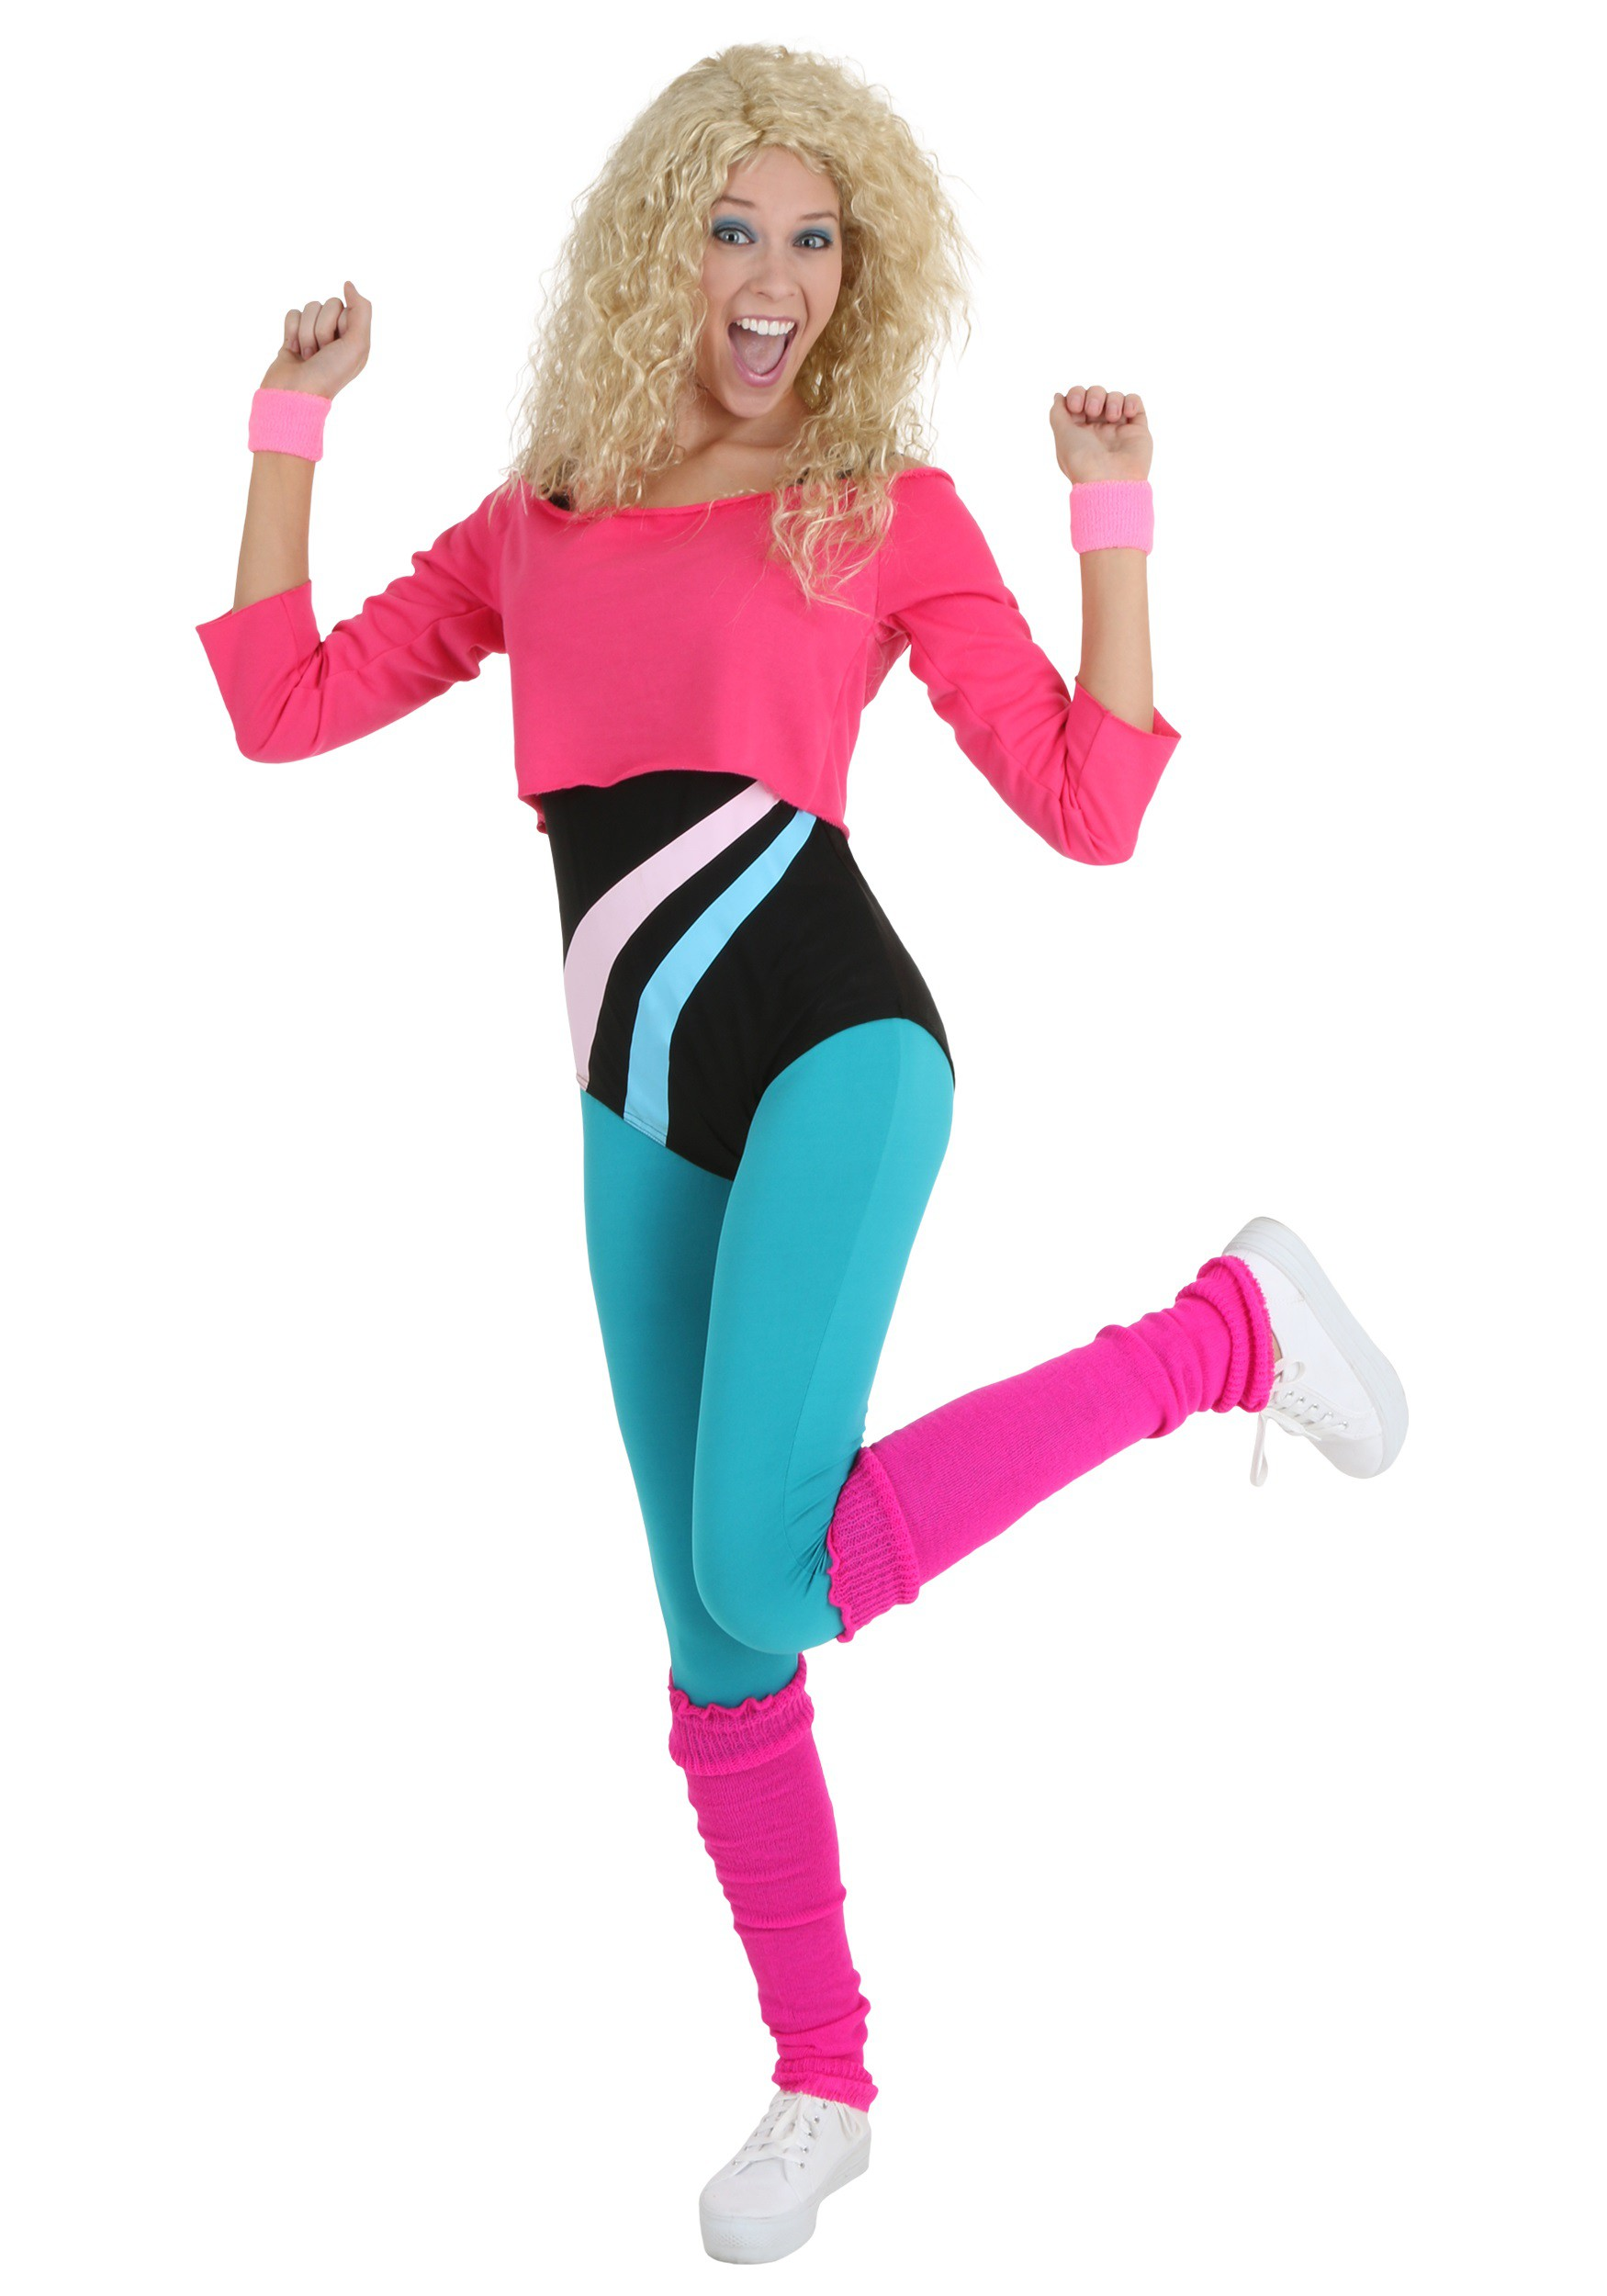 80s Workout Girl Costume For Women